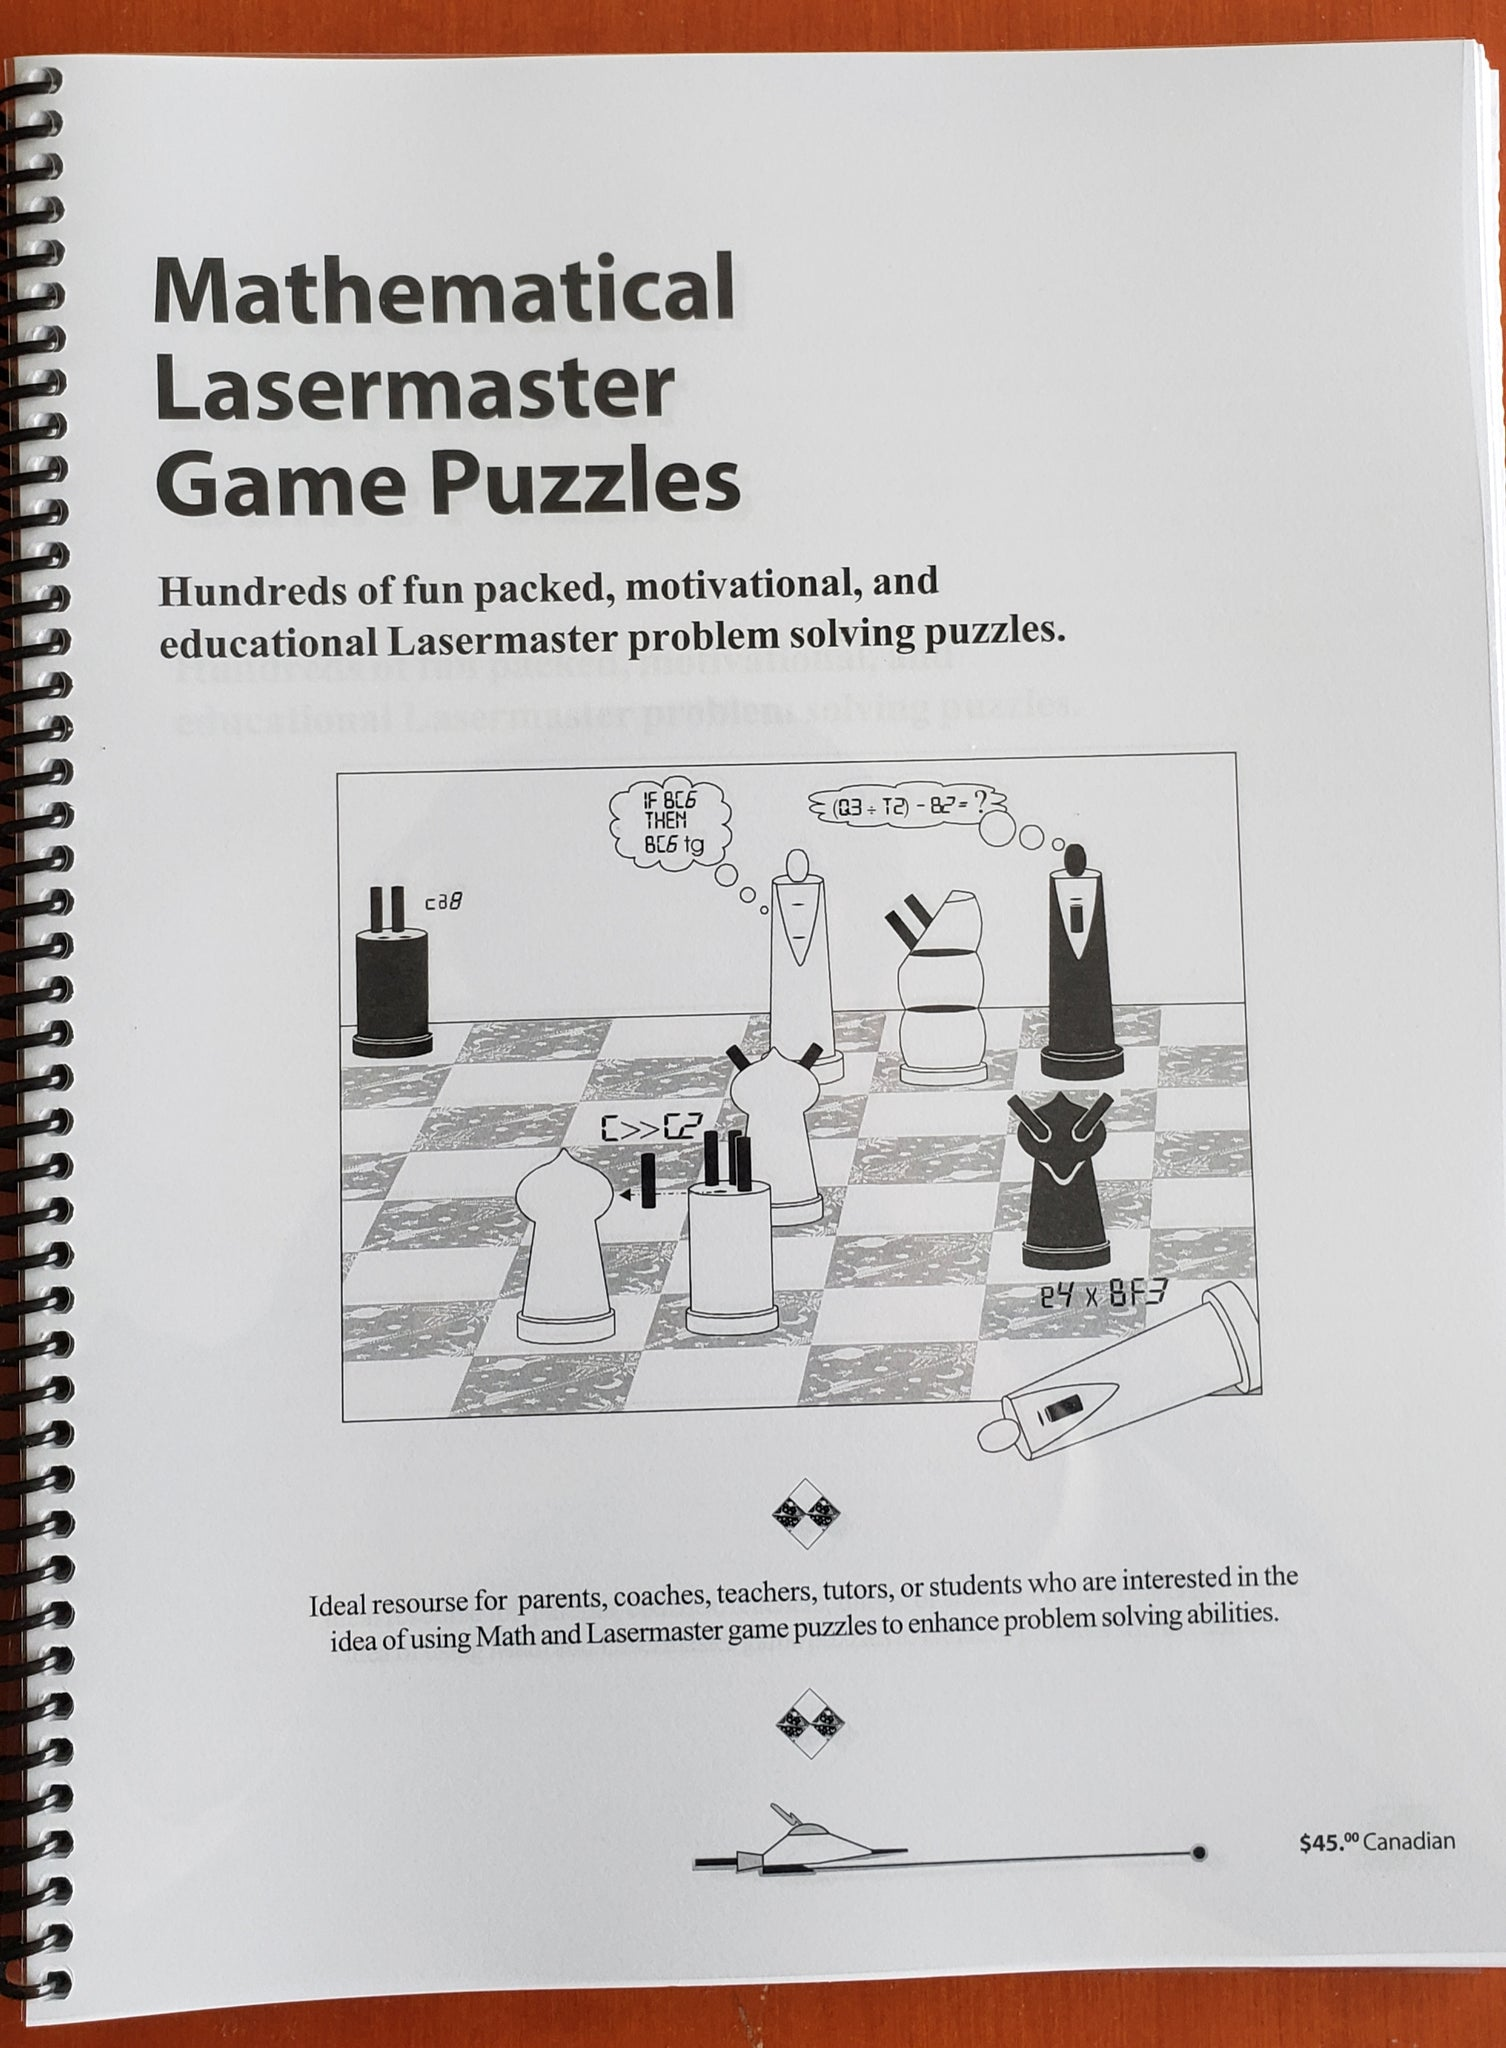 Mathematical Laser Master Game Puzzles